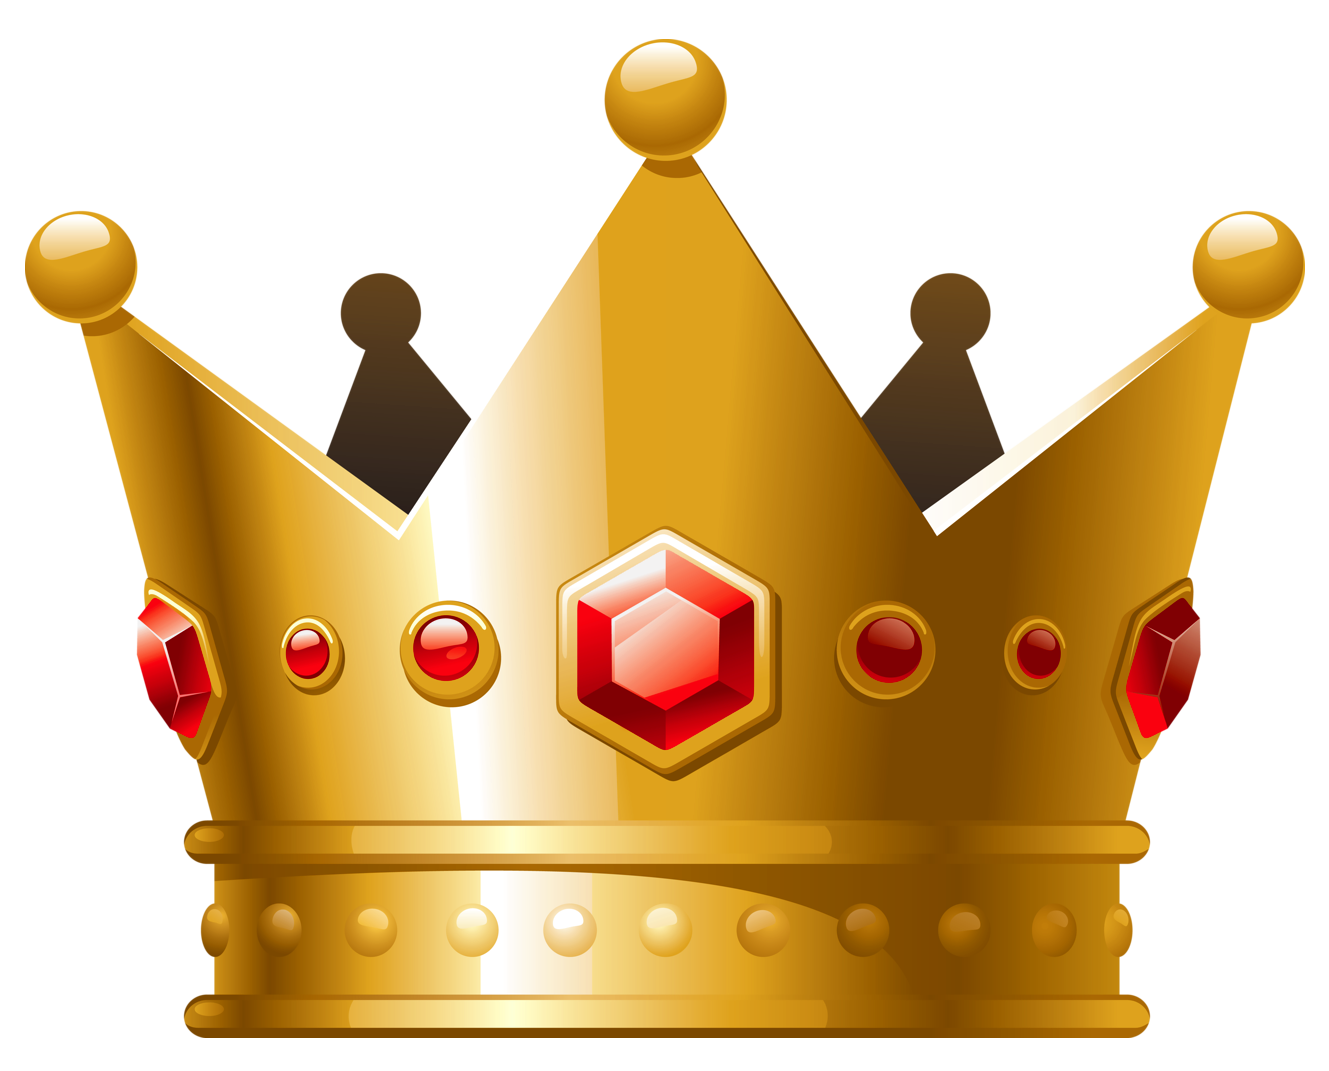 Transparent image with crowns. Crown clip art clear background